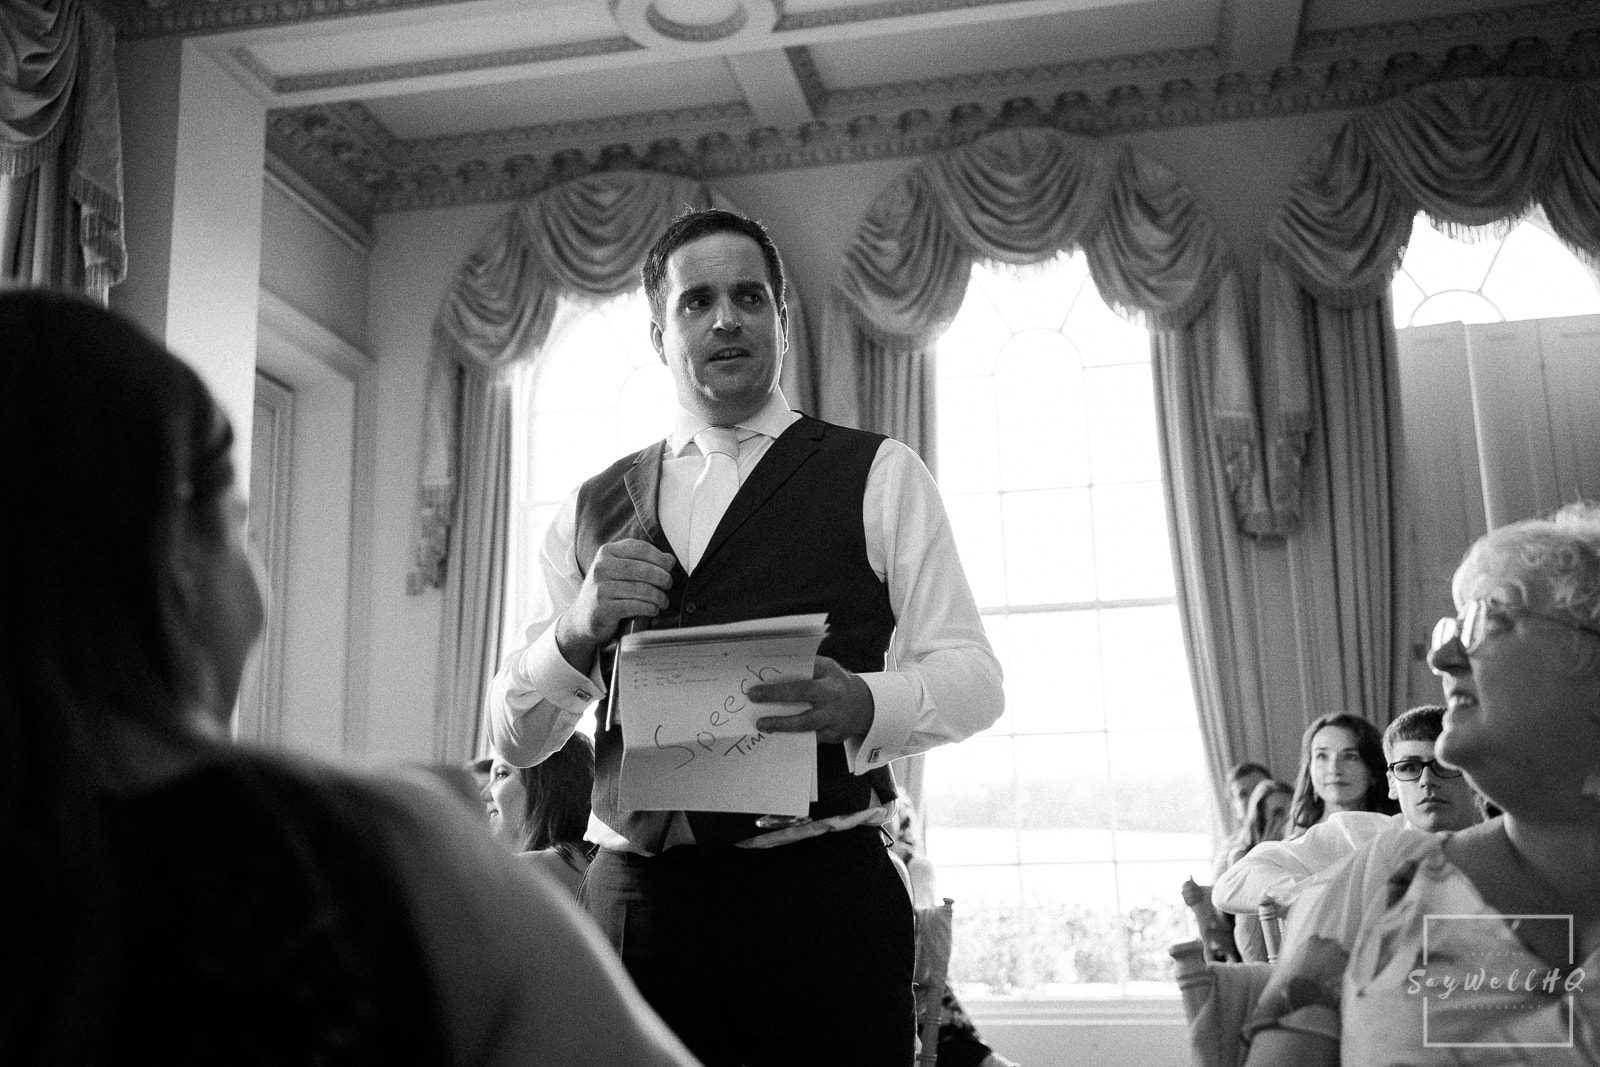 Prestwold Hall Wedding Photography - wedding speeches in the main room at Prestwold Hall